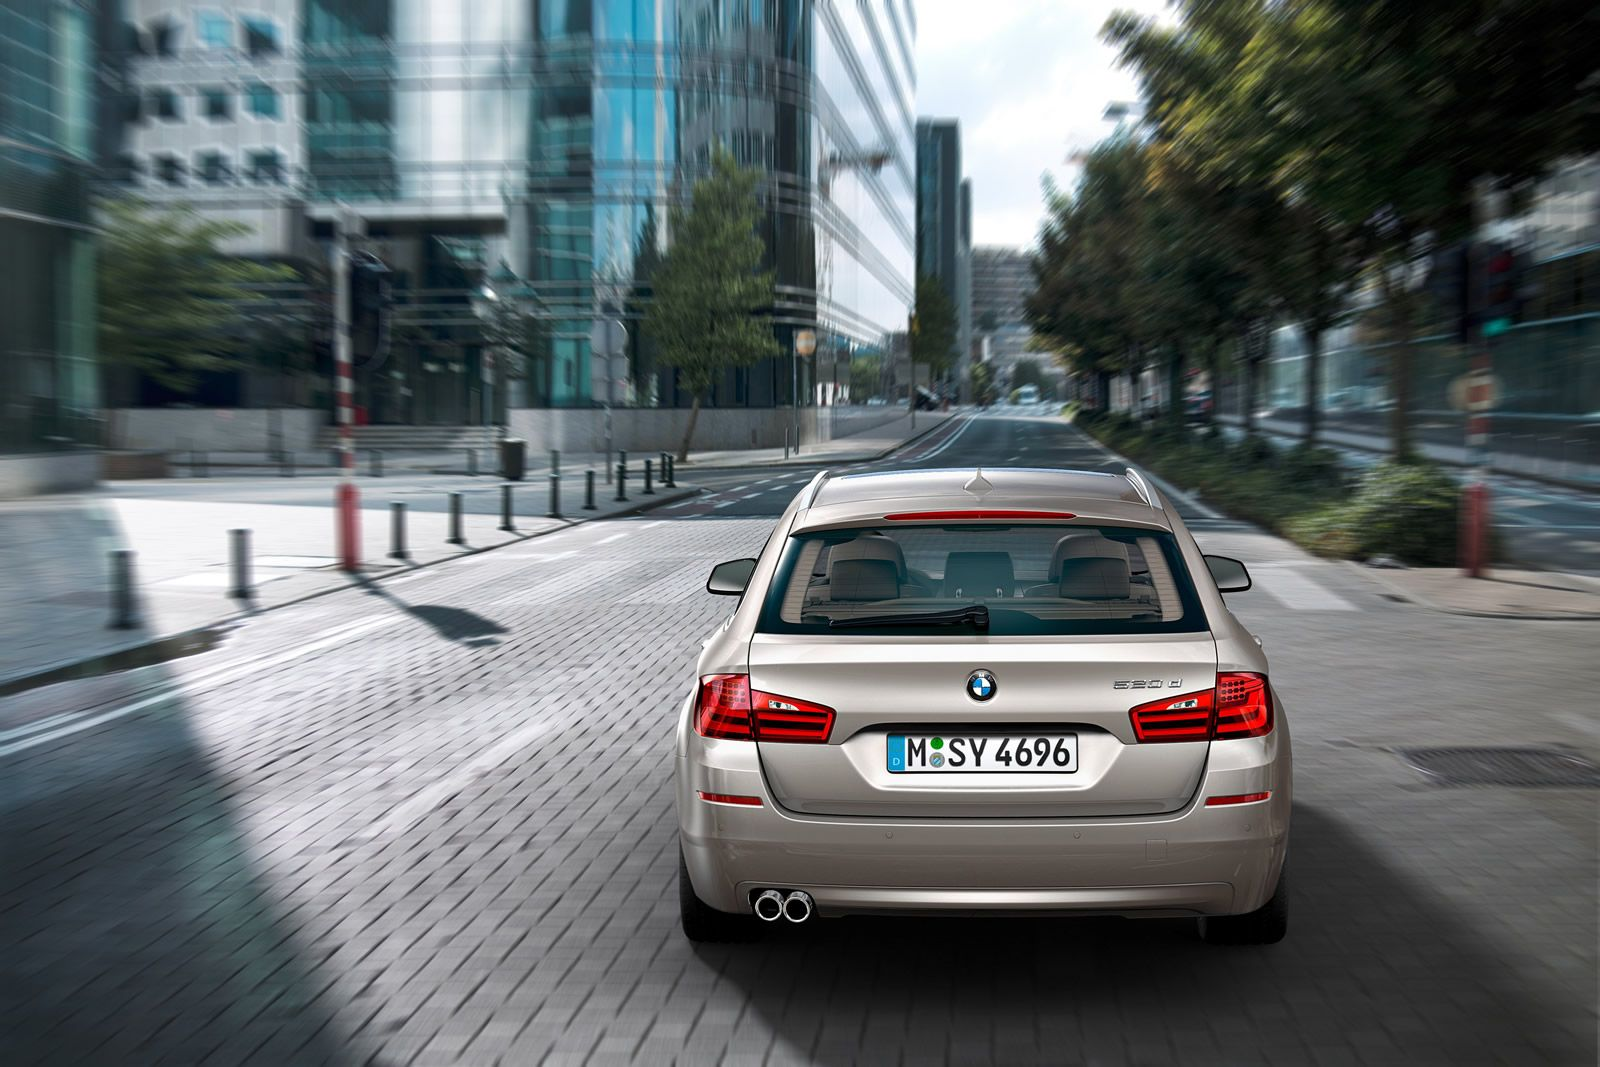 The new 2011 BMW 5 Series Touring with cool Highlights